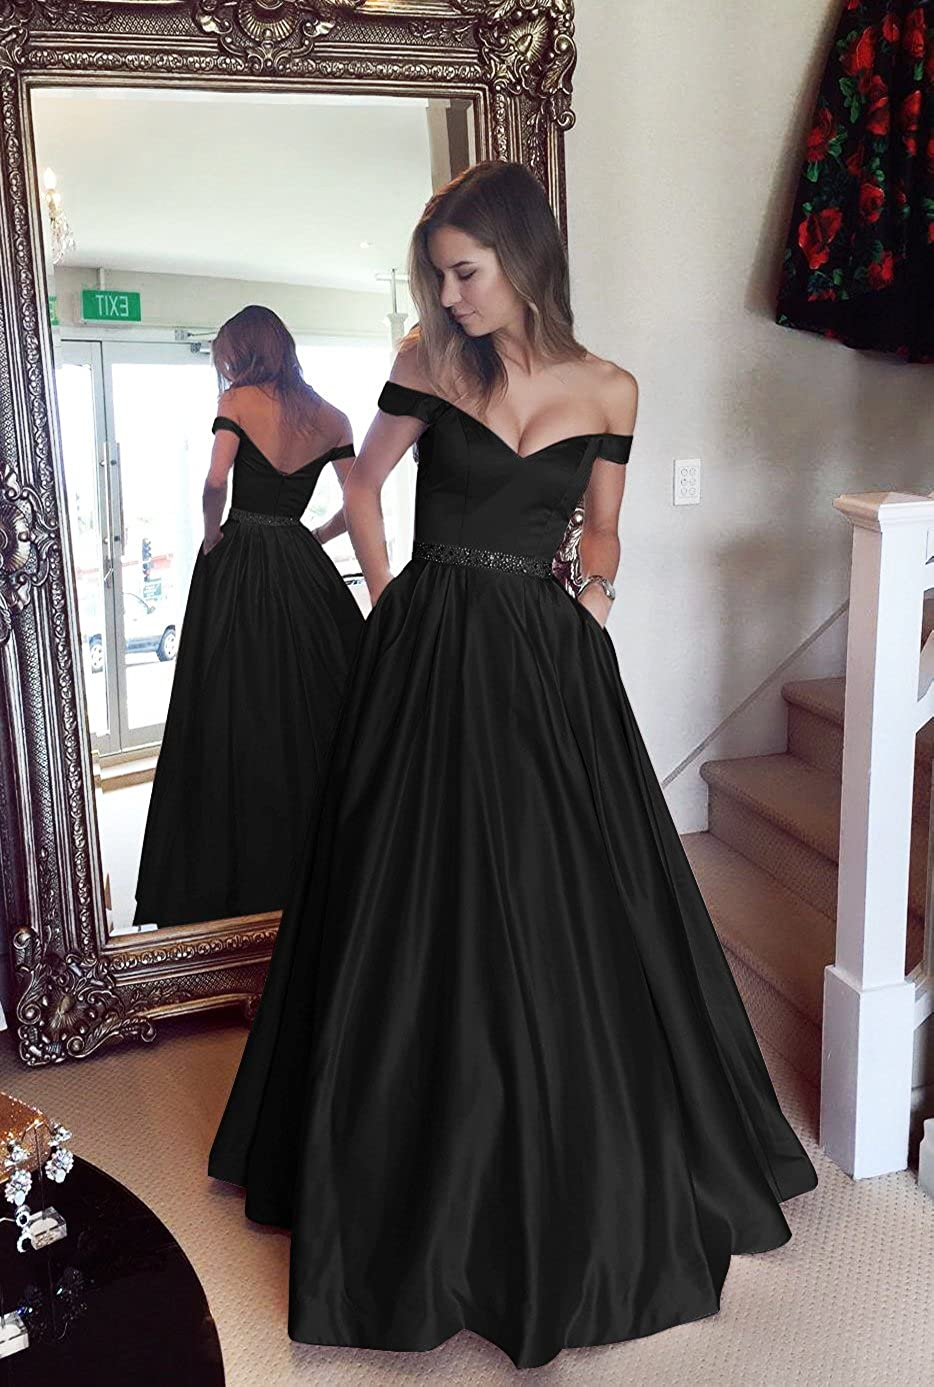 8698b66018 Amazon.com  Harsuccting Off The Shoulder Beaded Satin Evening Prom Dress  with Pocket  Clothing